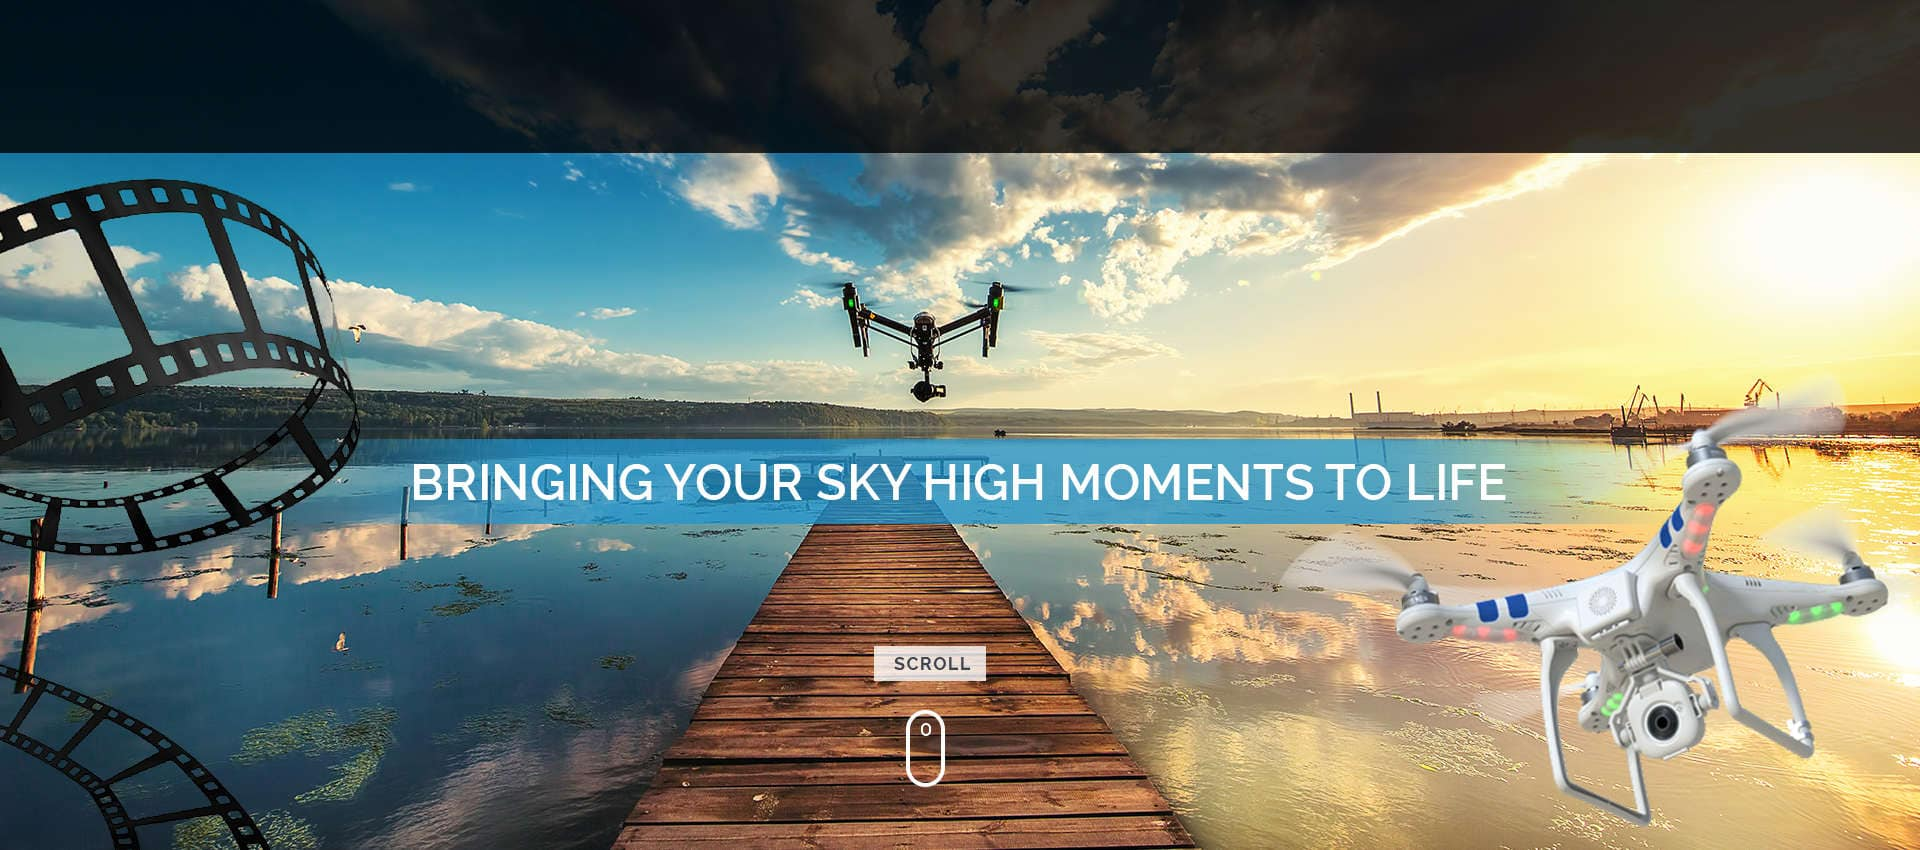 Professional drone video editing services online bring your moments to life